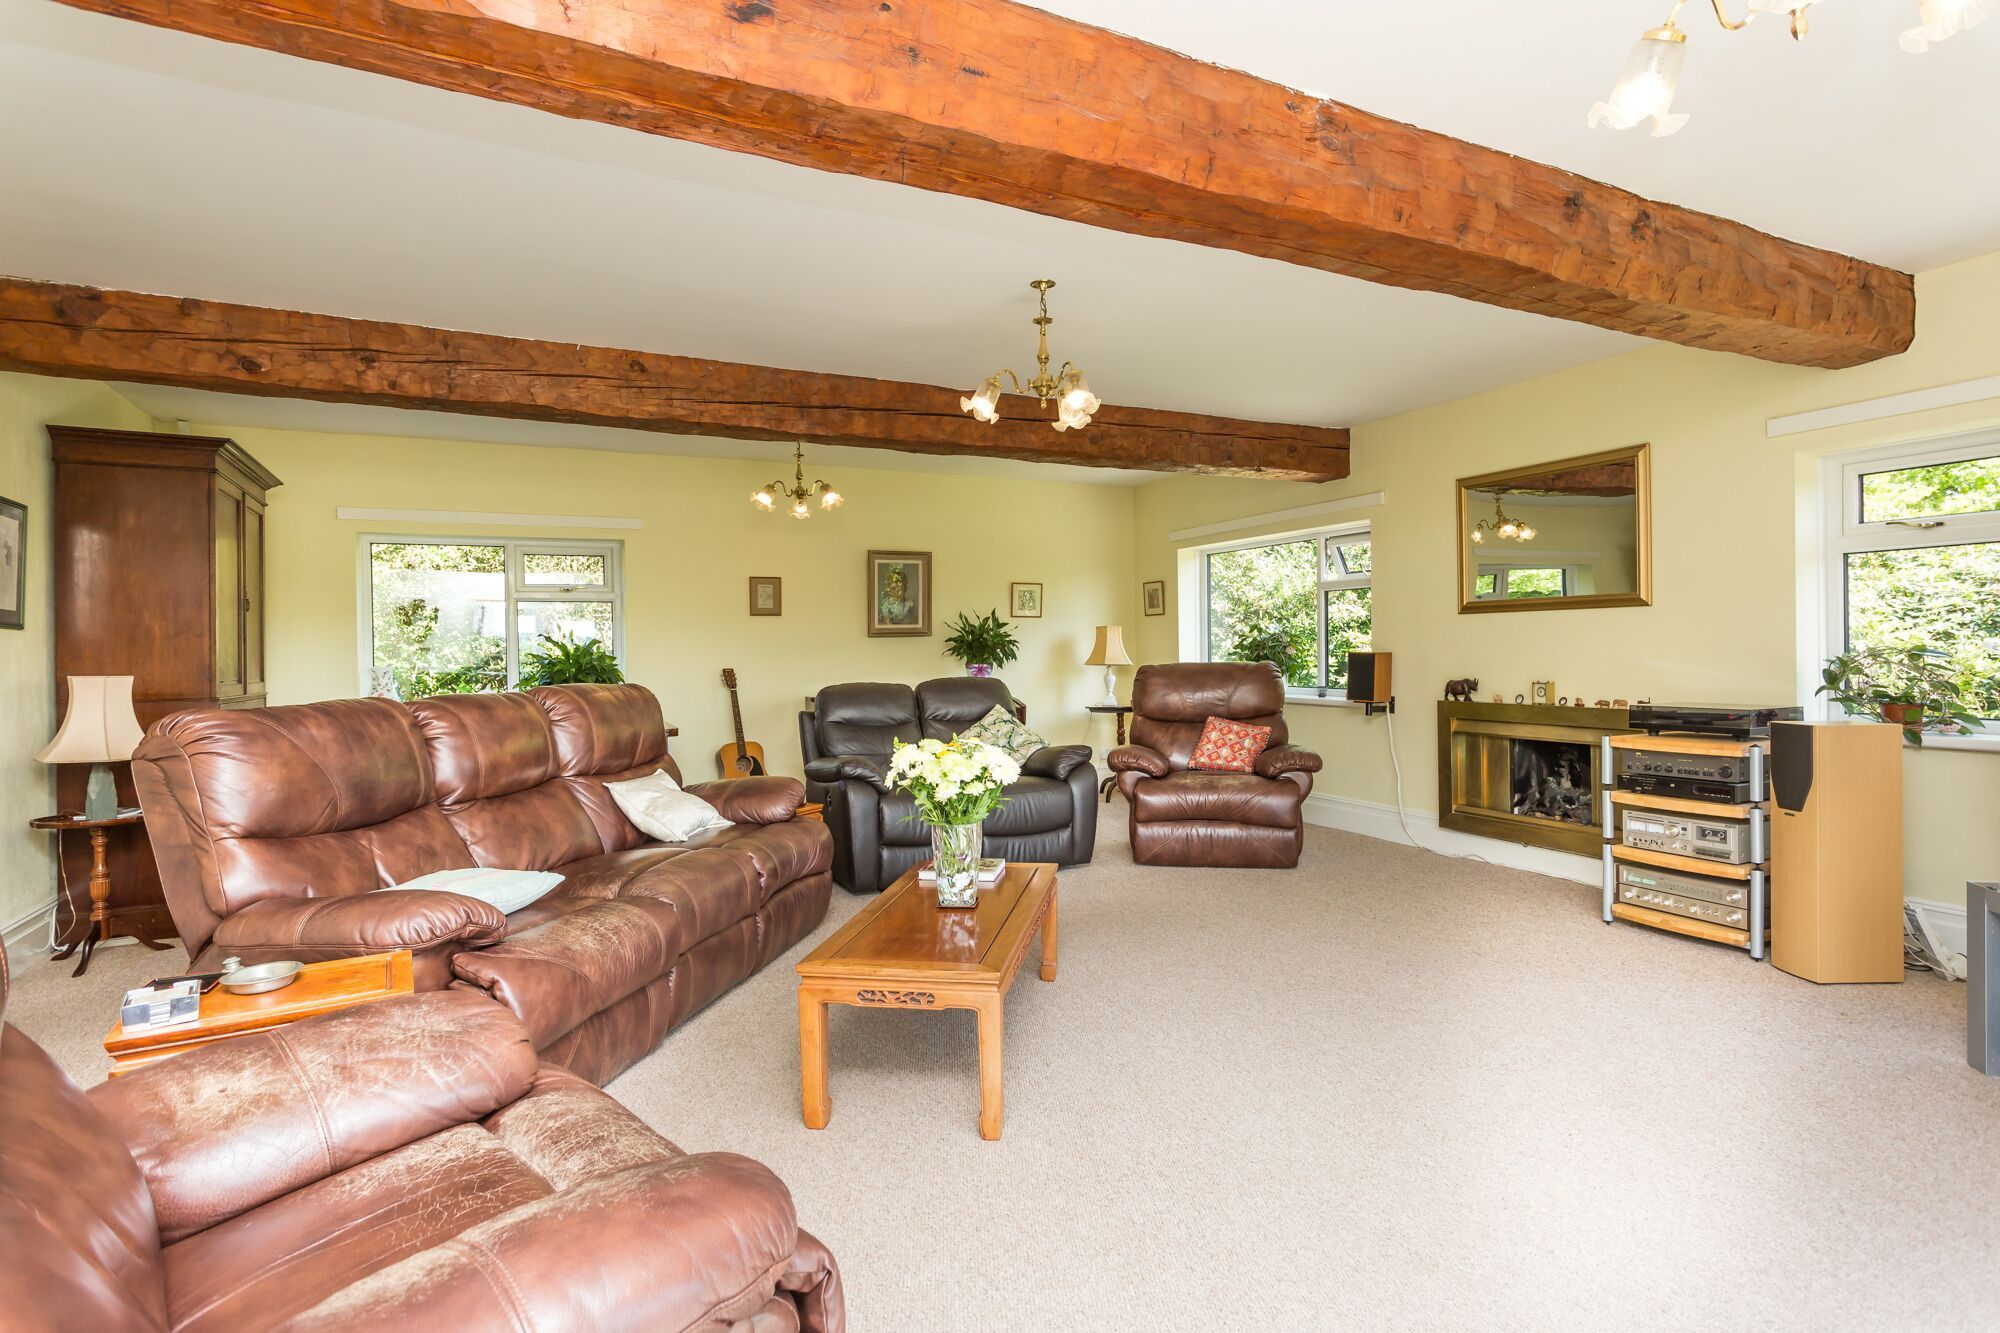 6 bedroom detached house For Sale in Todmorden - Photograph 6